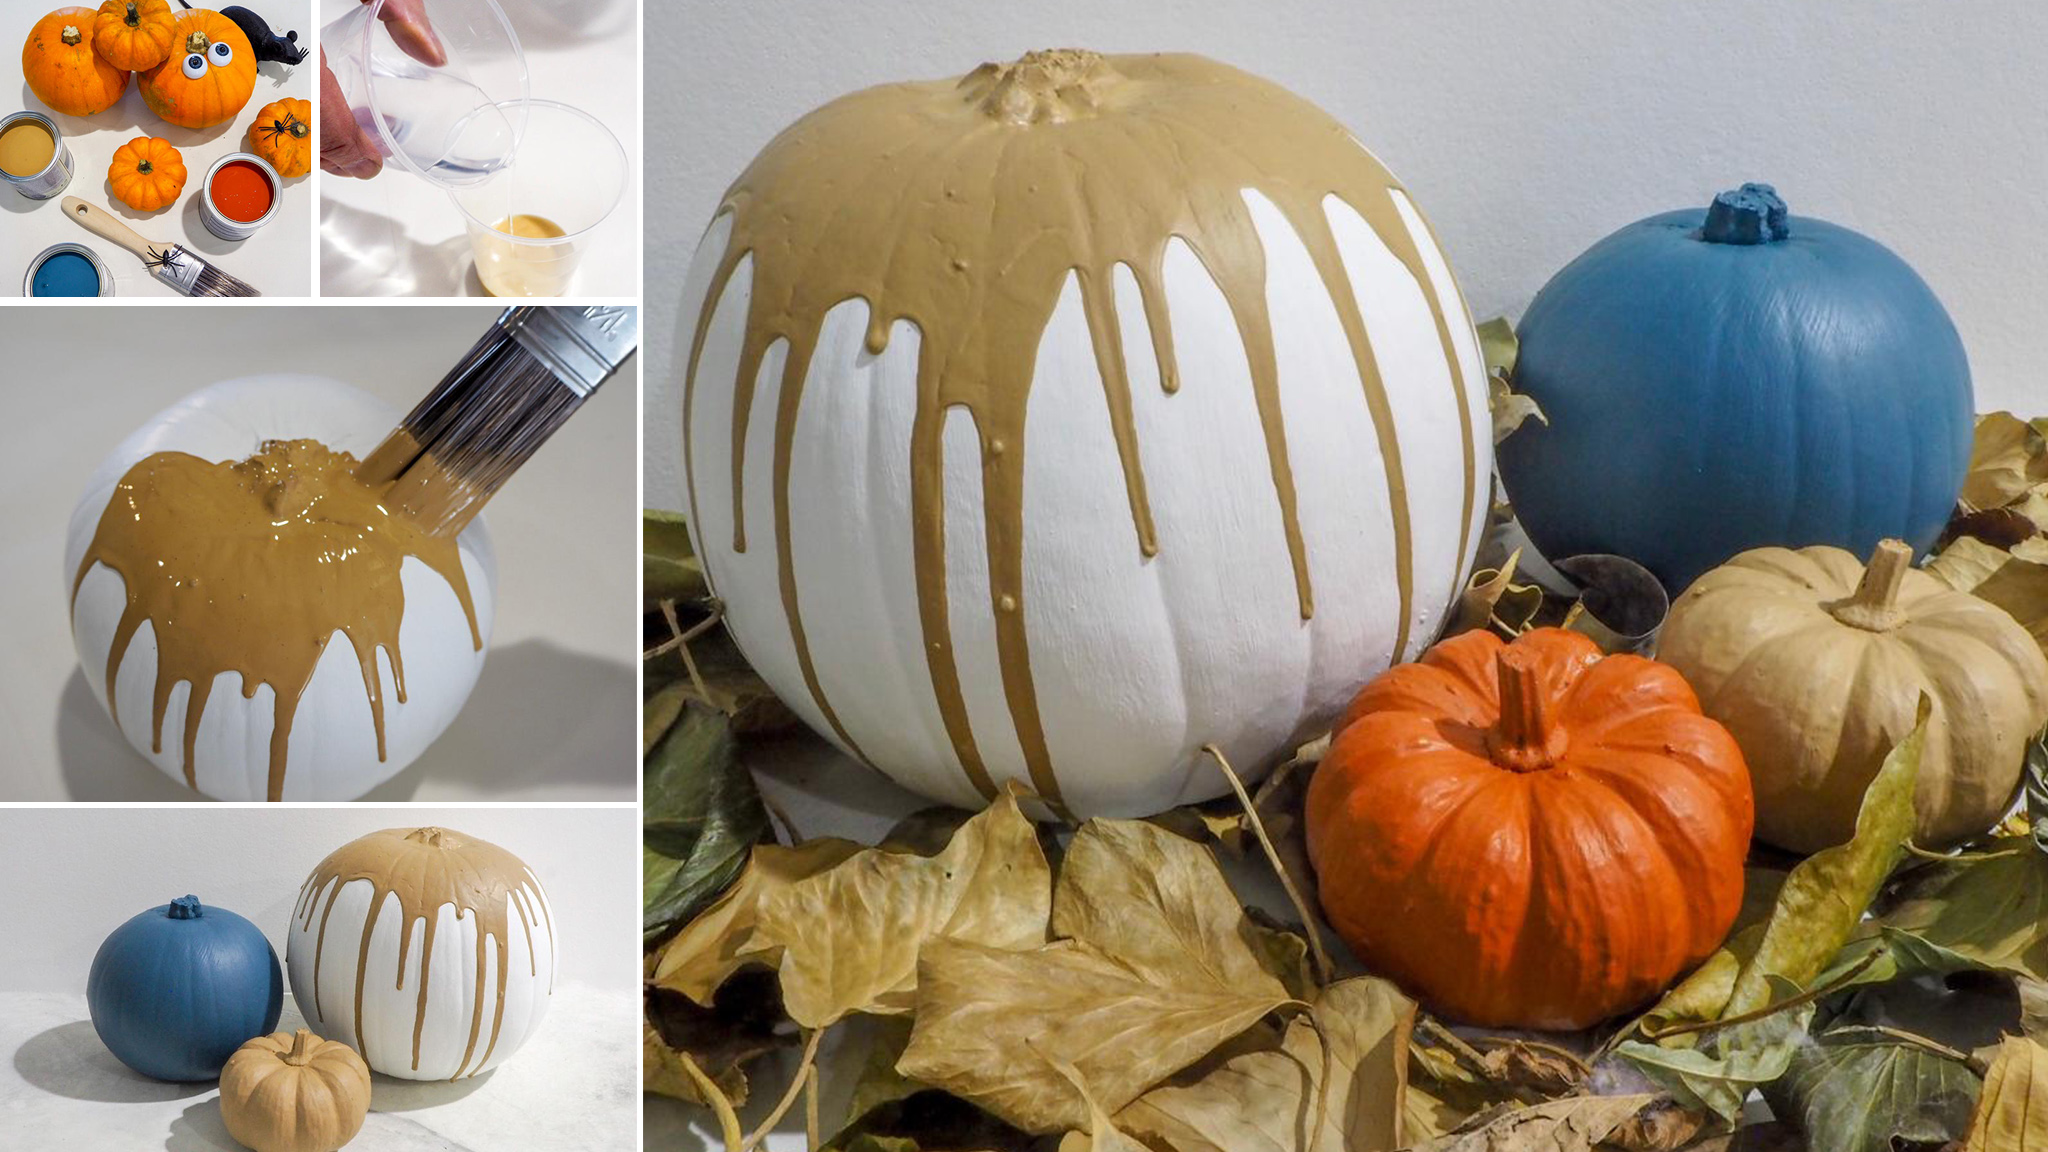 Drip-effect on painted pumpkins